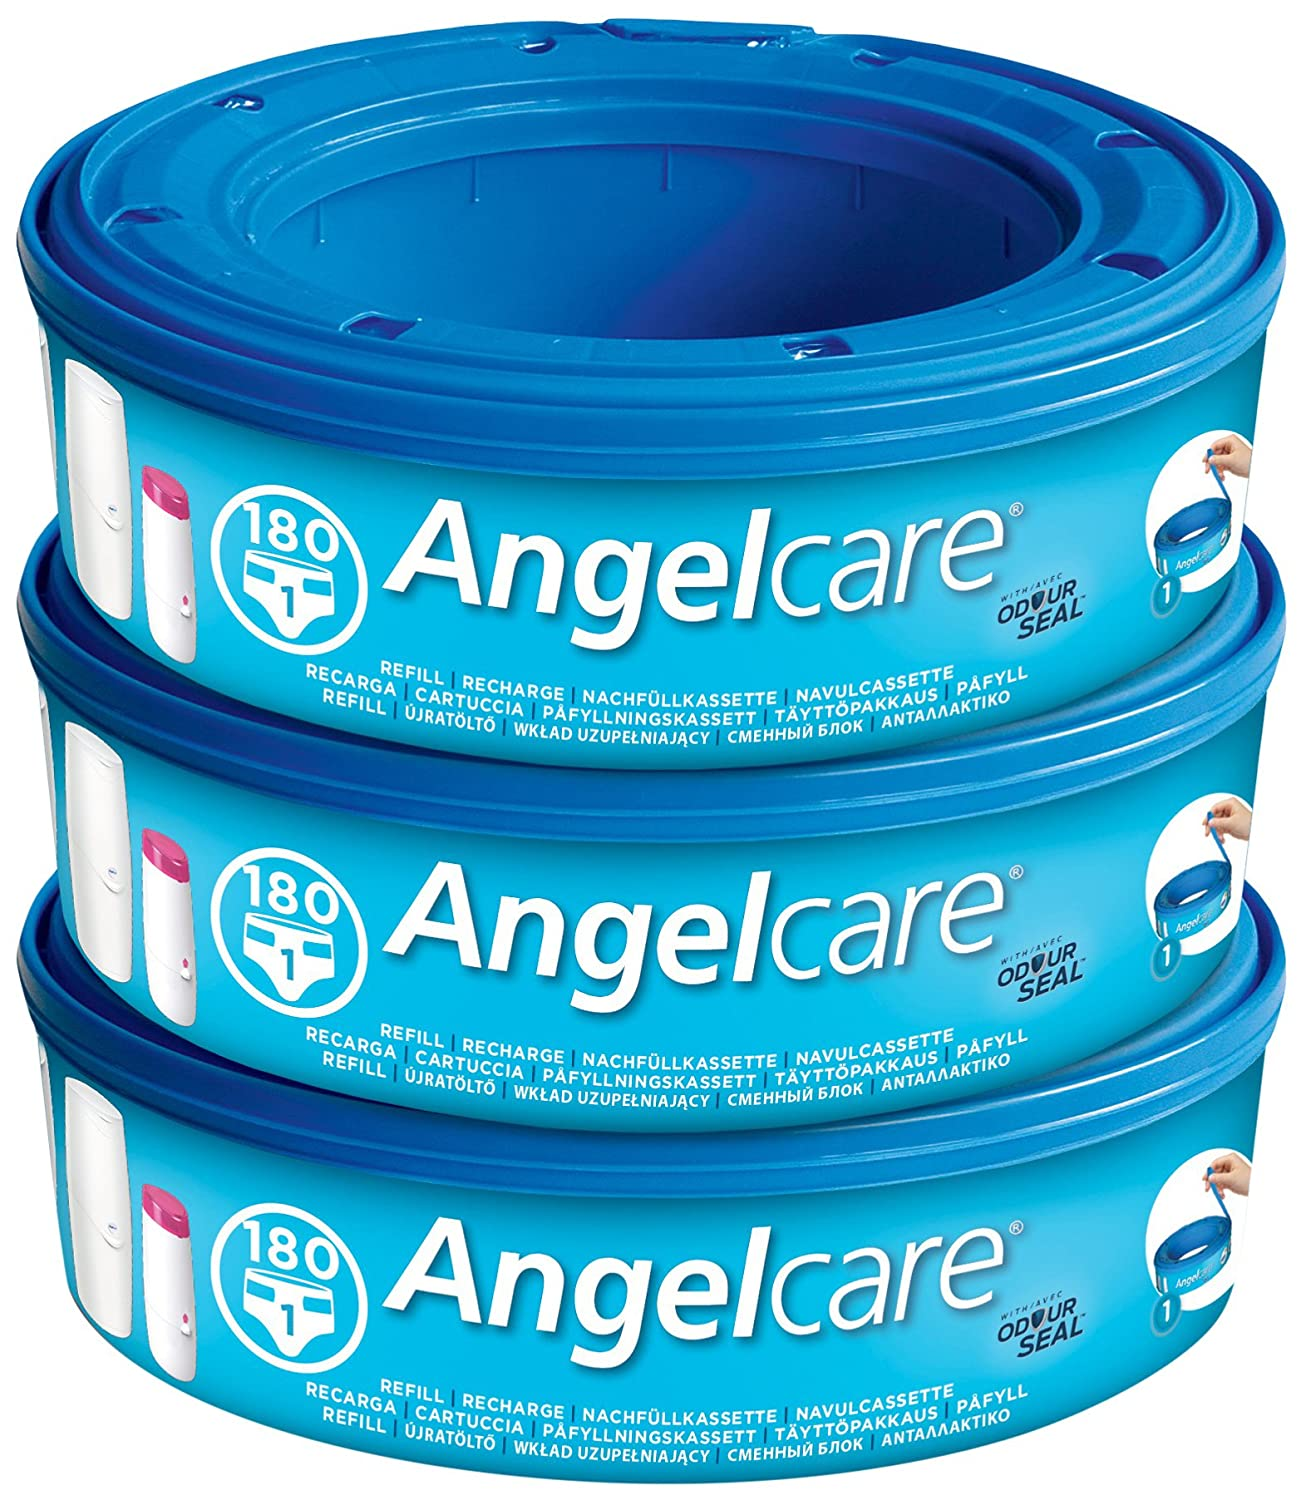 Angelcare Refill Cassettes - Pack of 6 AC1106